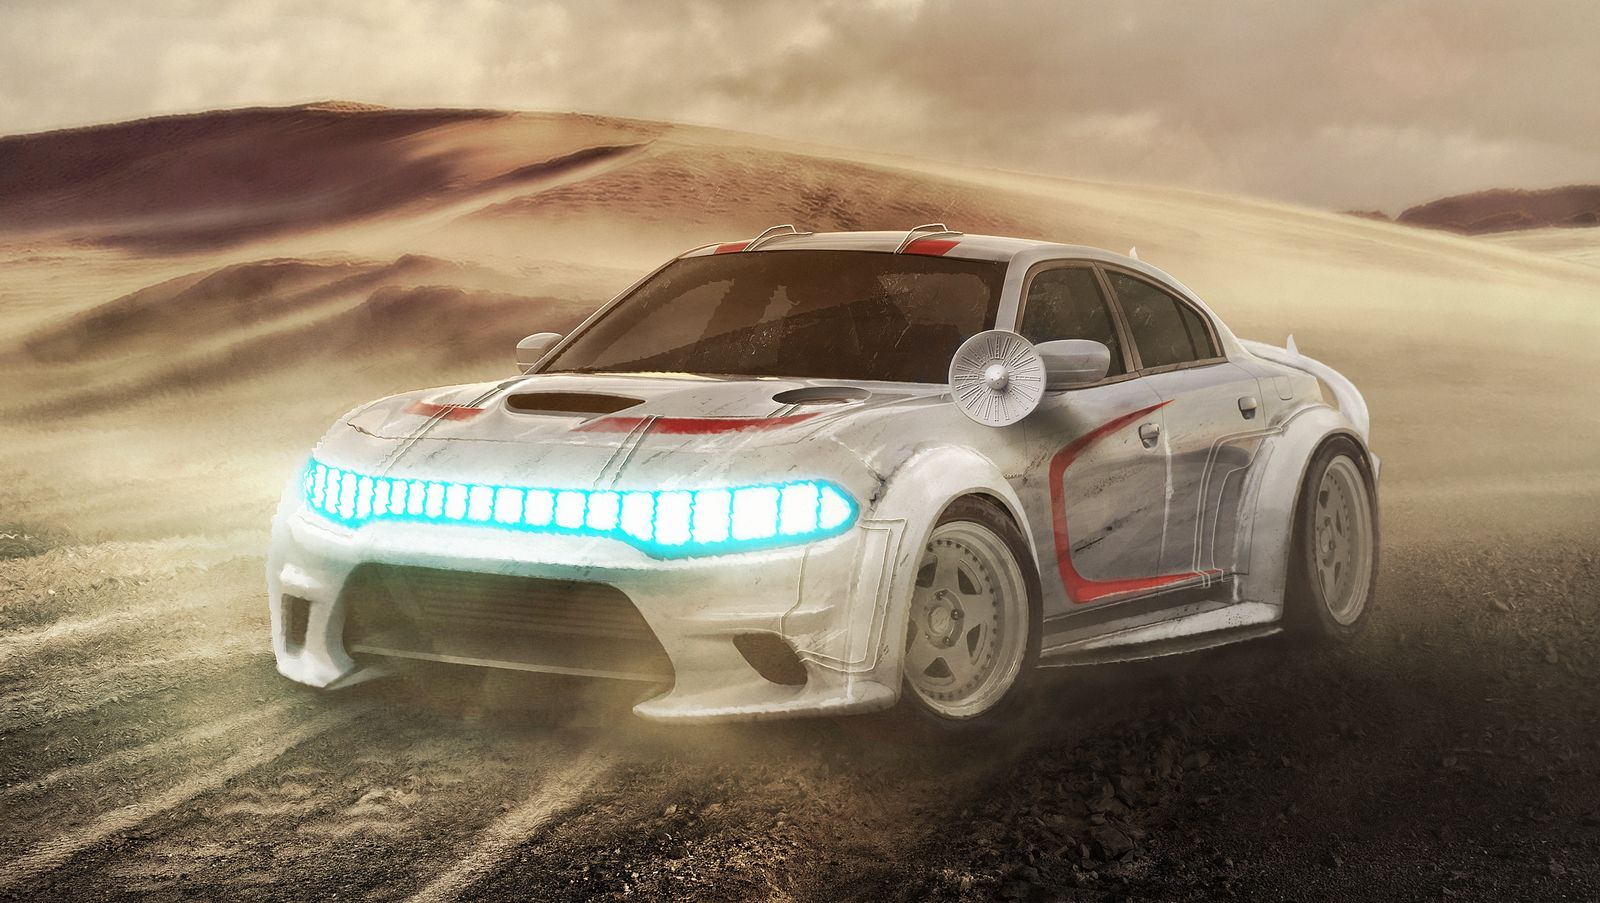 If Star Wars Characters Drove Earth Cars - Digital Art Mix